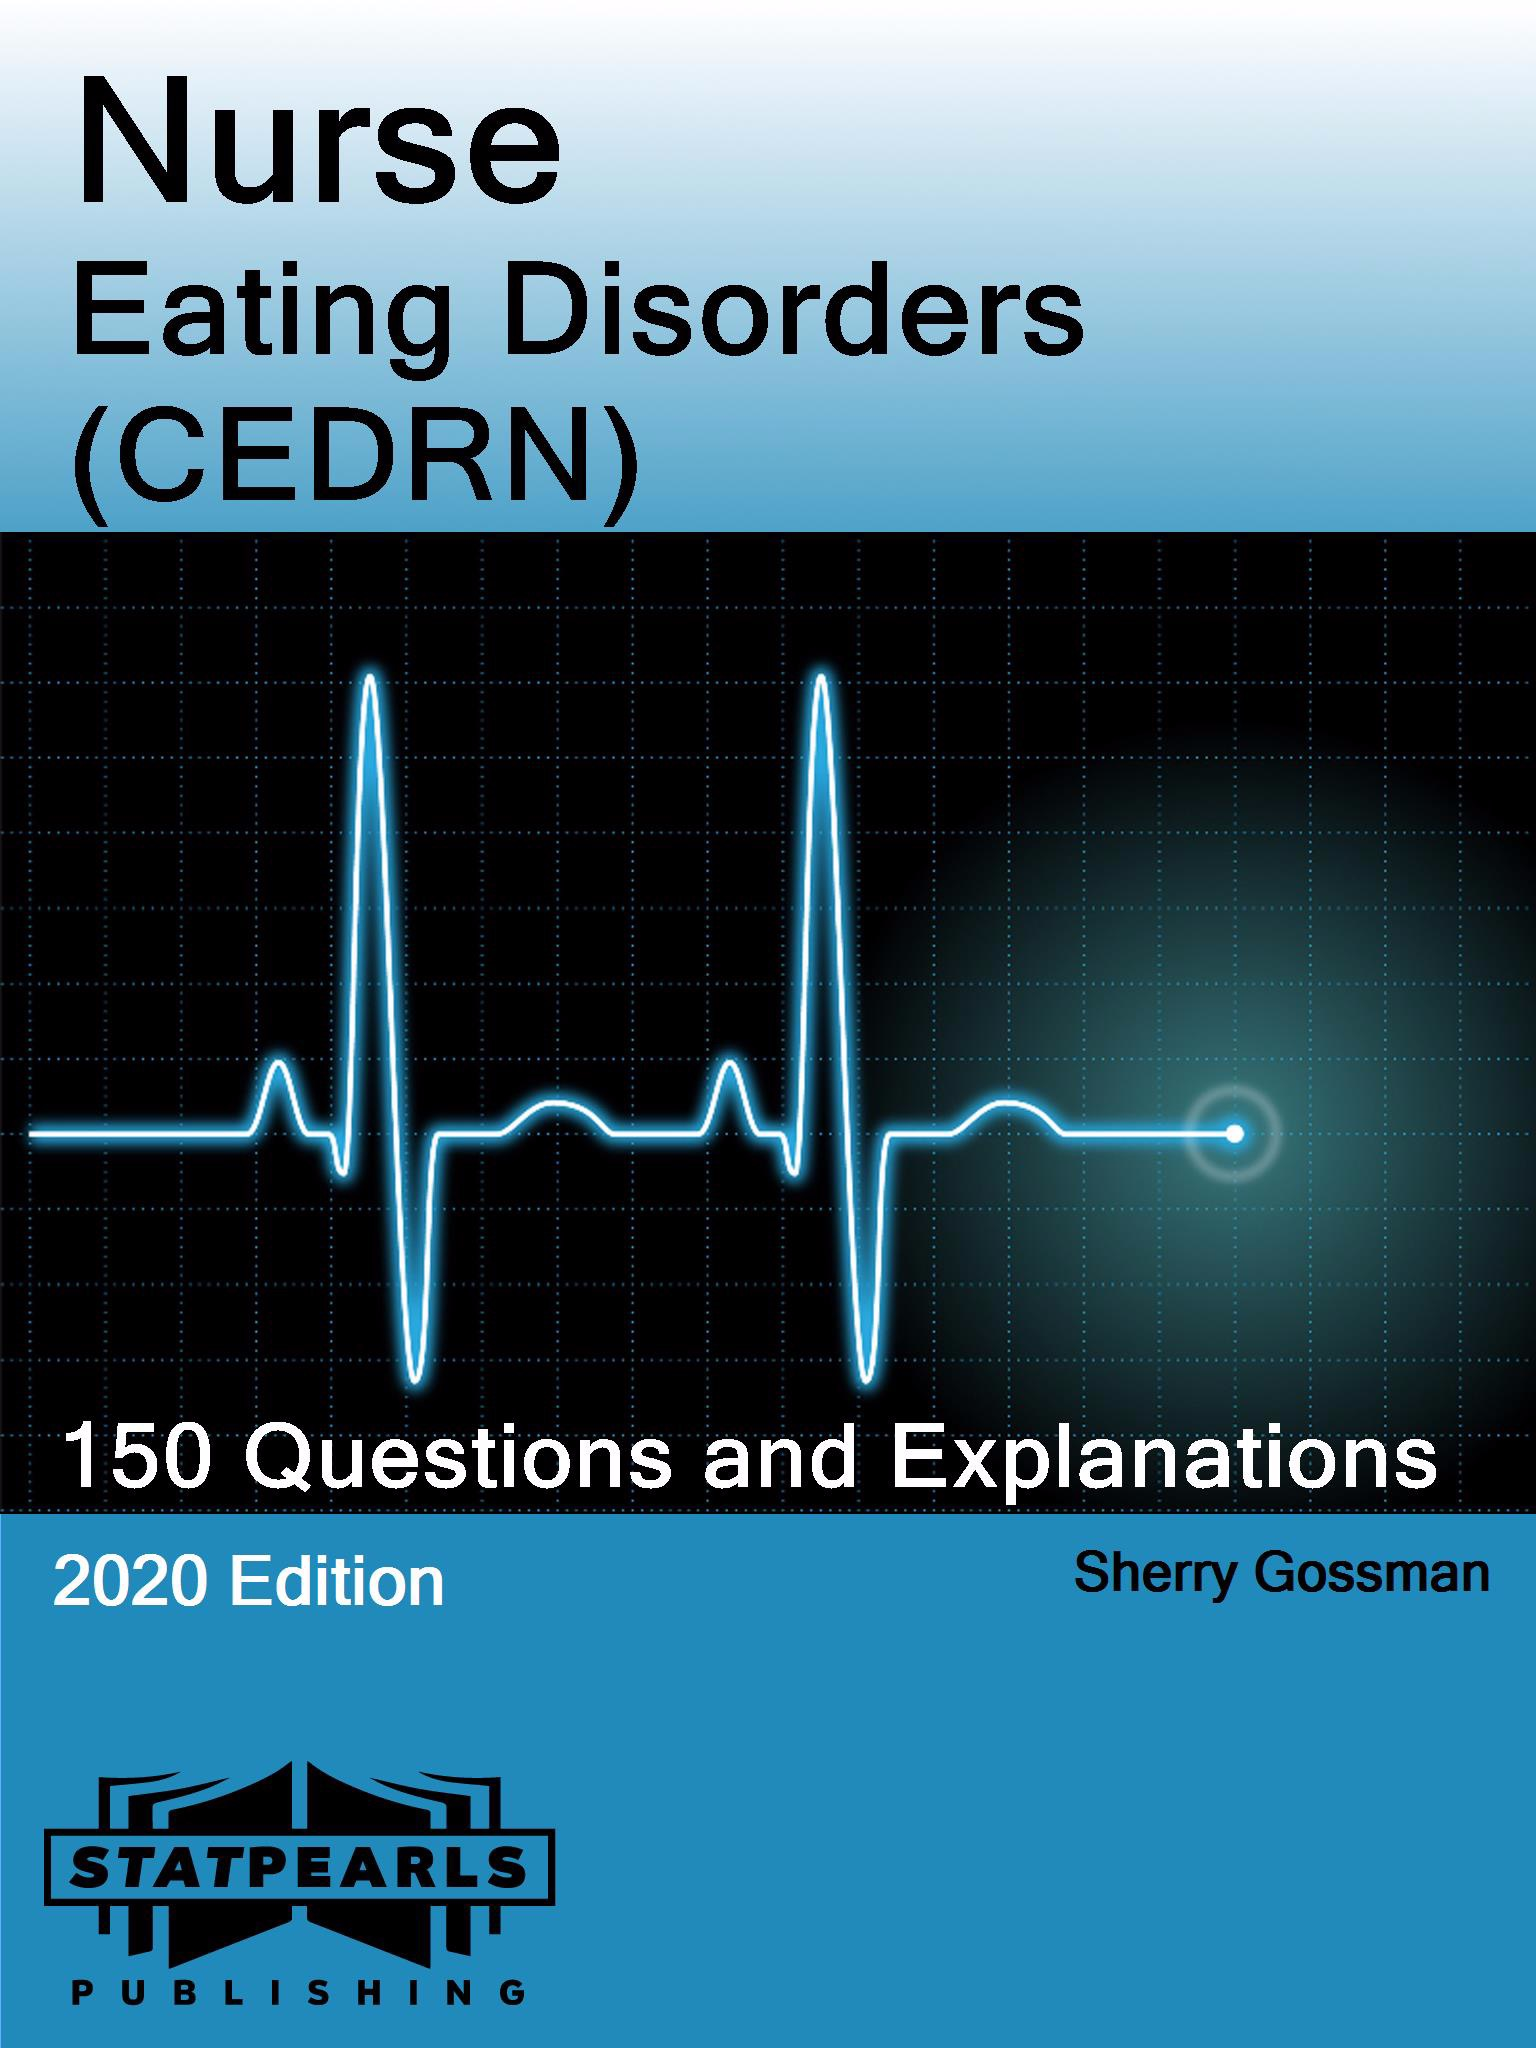 Nurse Eating Disorders (CEDRN)